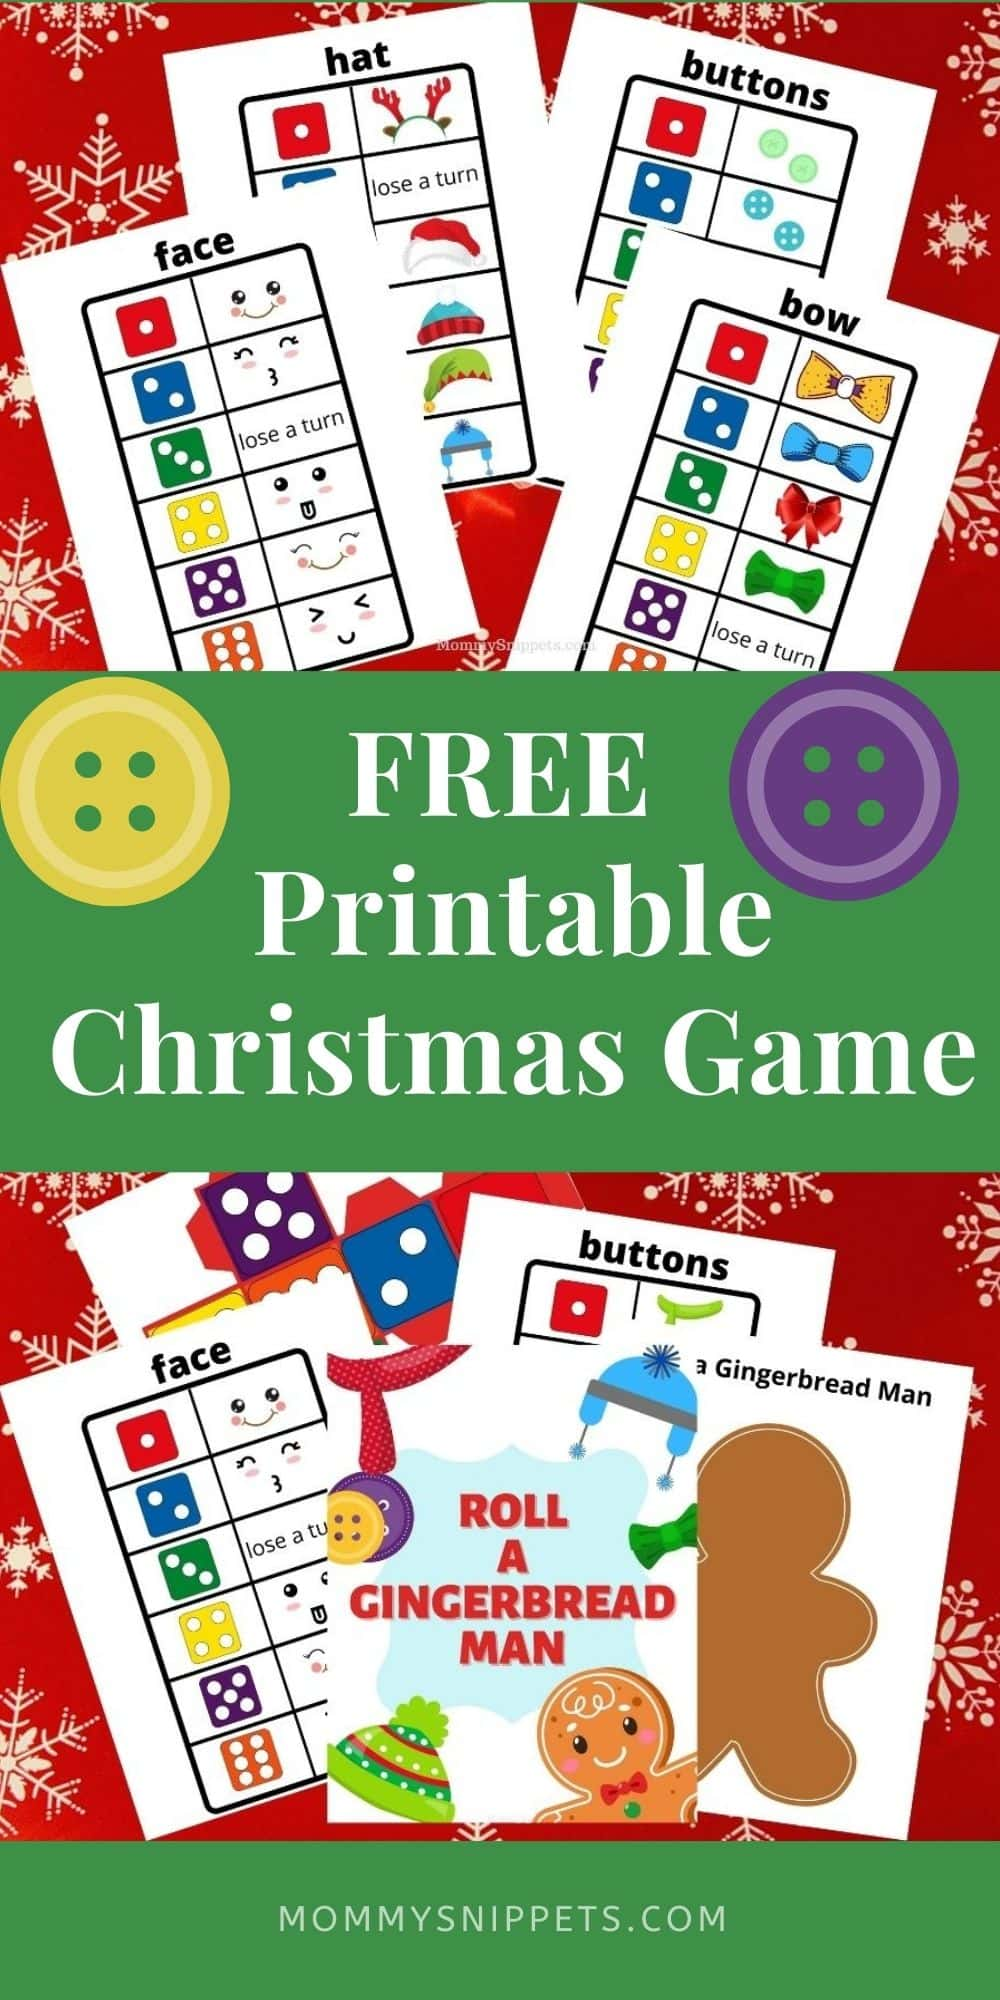 Free Printable Roll A Gingerbread Game- MommySnippets.com